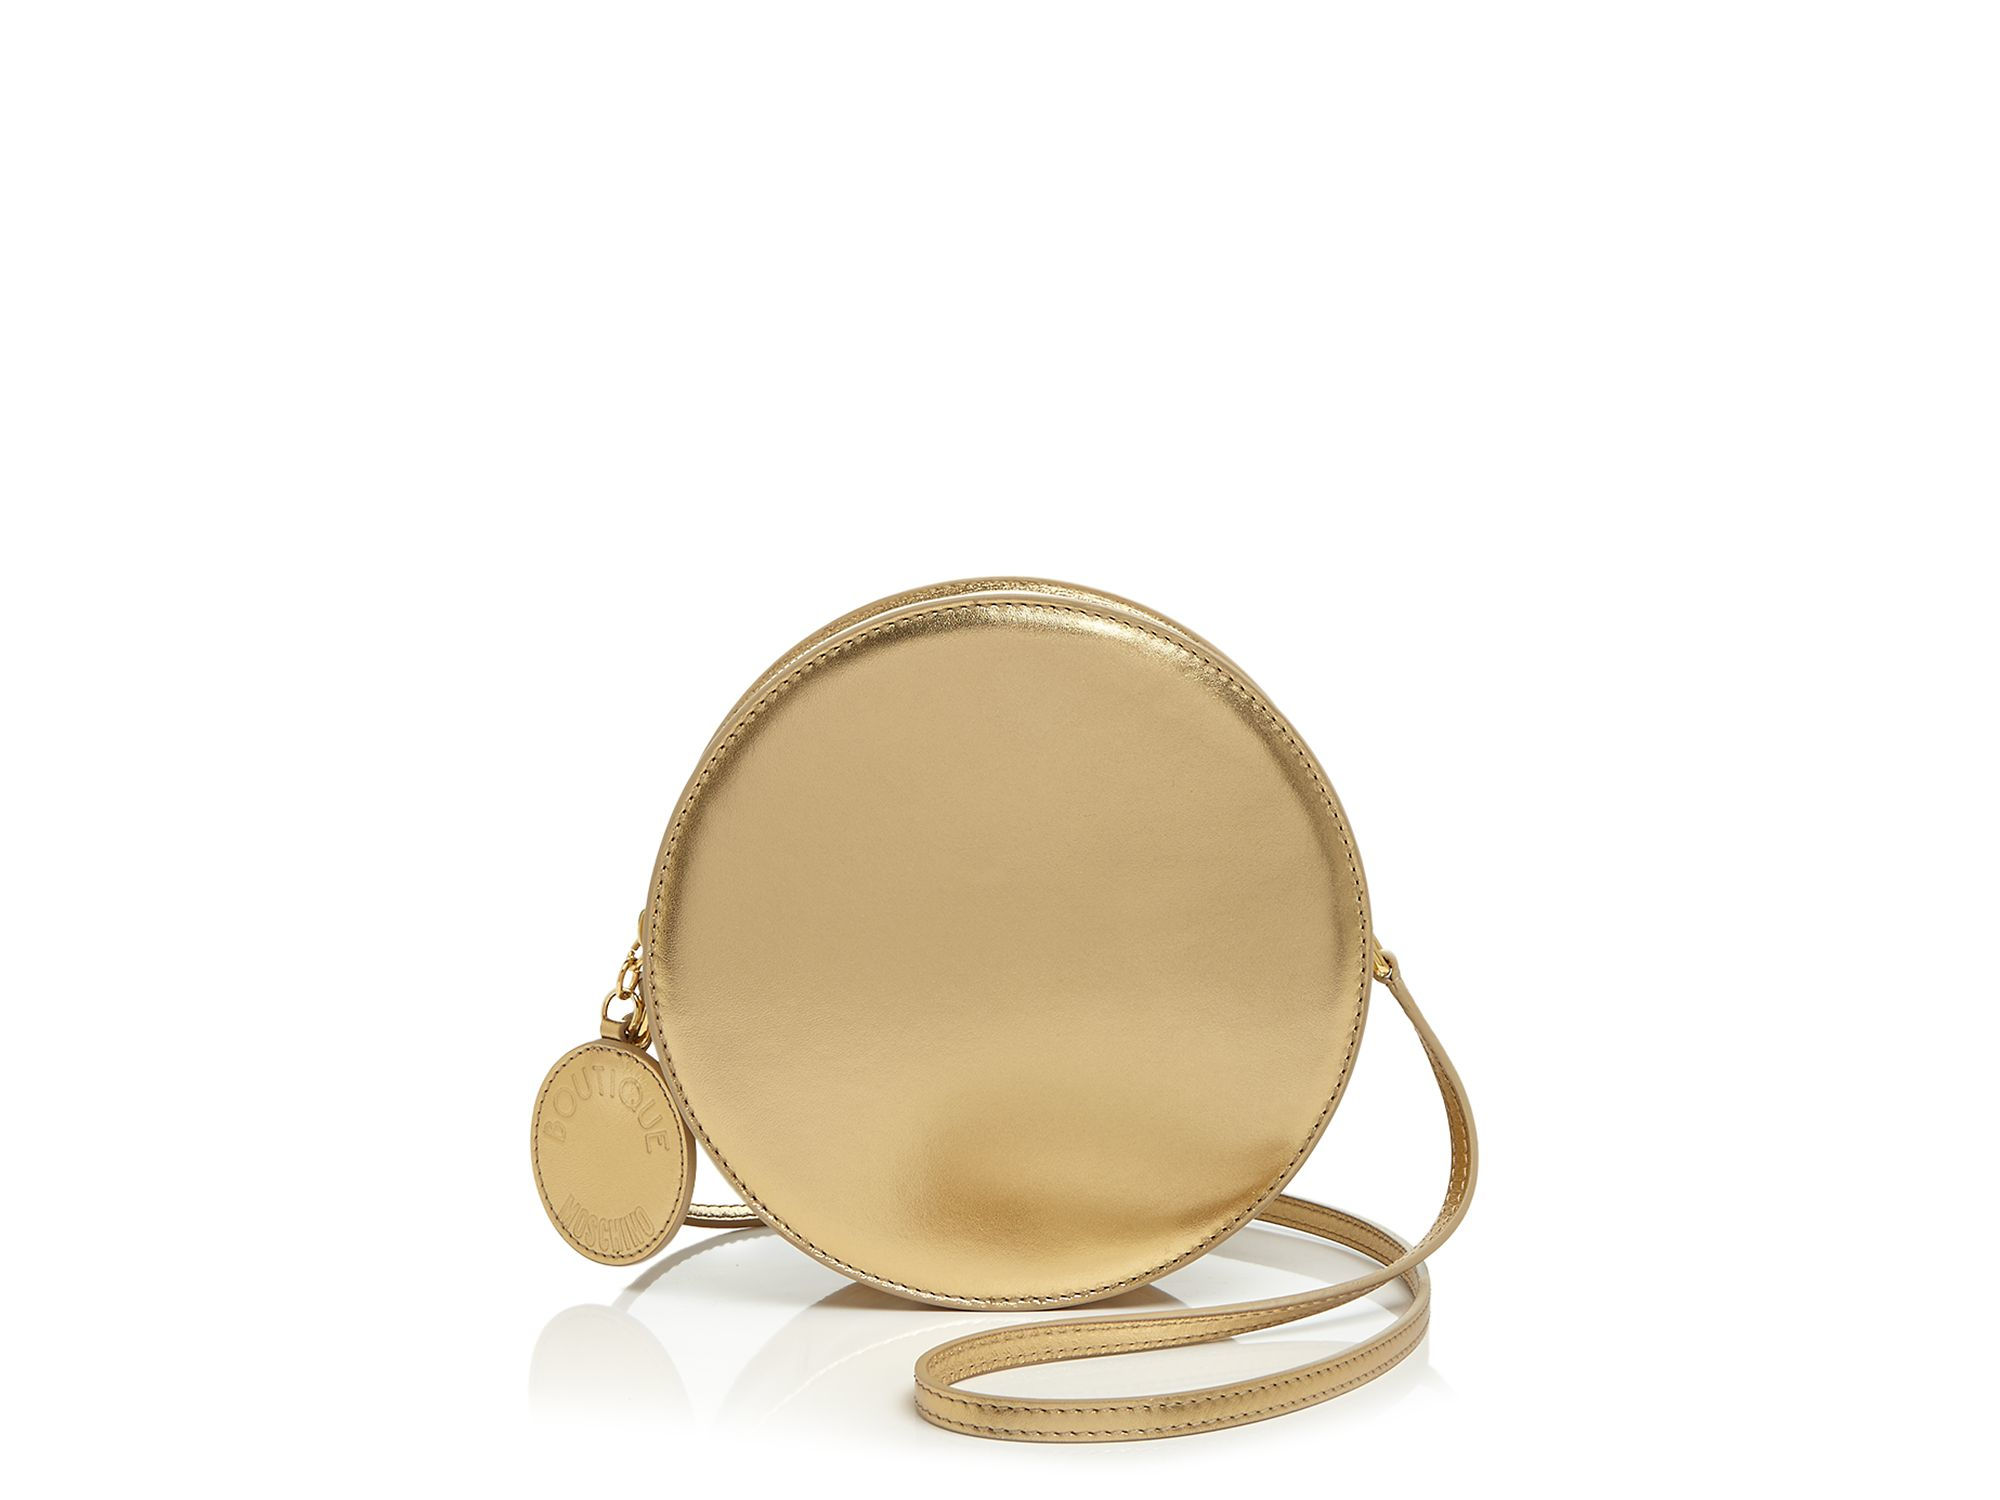 Boutique Moschino Leather Crossbody - Drum Bag in Gold (Metallic)